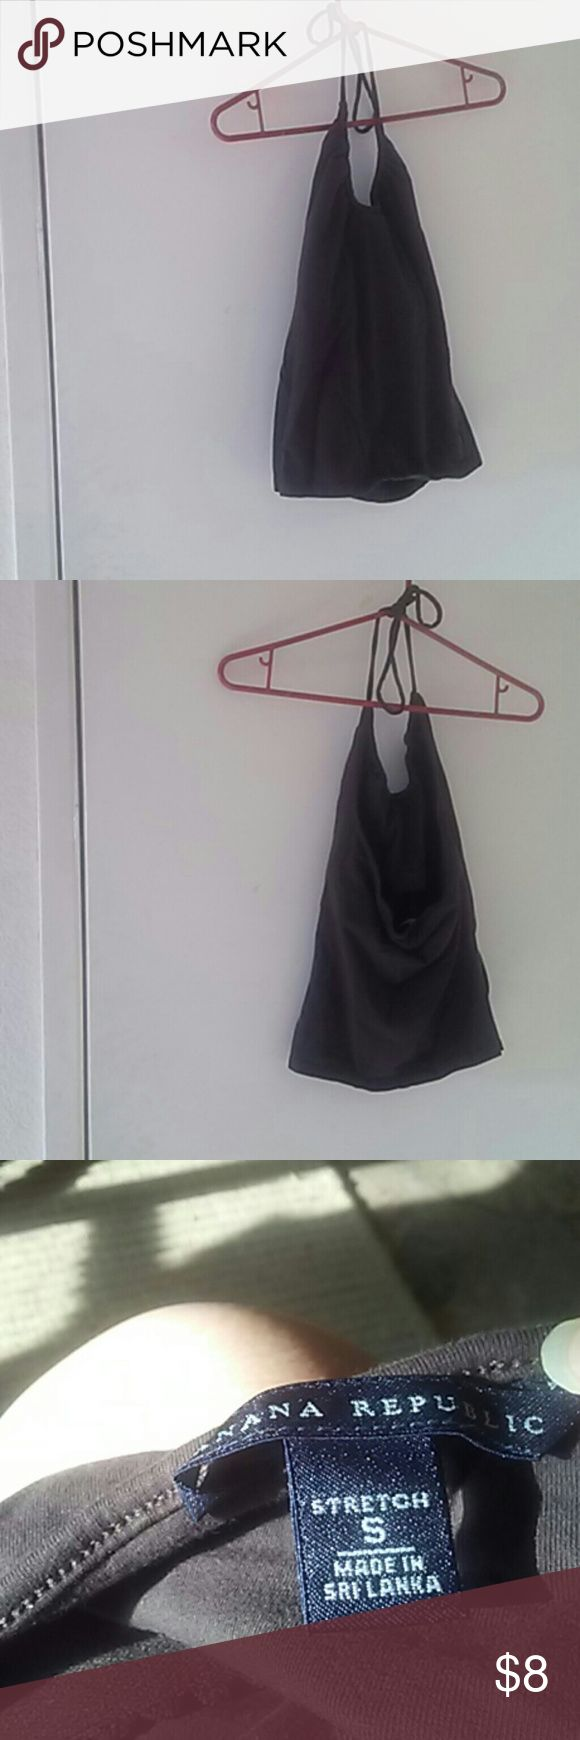 Banana Republic brown halter top Brown halter top from Banana Republic.  In EUC.  Shows no signs of wear.  Cotton blend material.  Halter strap is adjustable and has a built in bra.  Draw string design.  Discount on bundles.  No trade or paypal. Banana Republic Tops Tank Tops